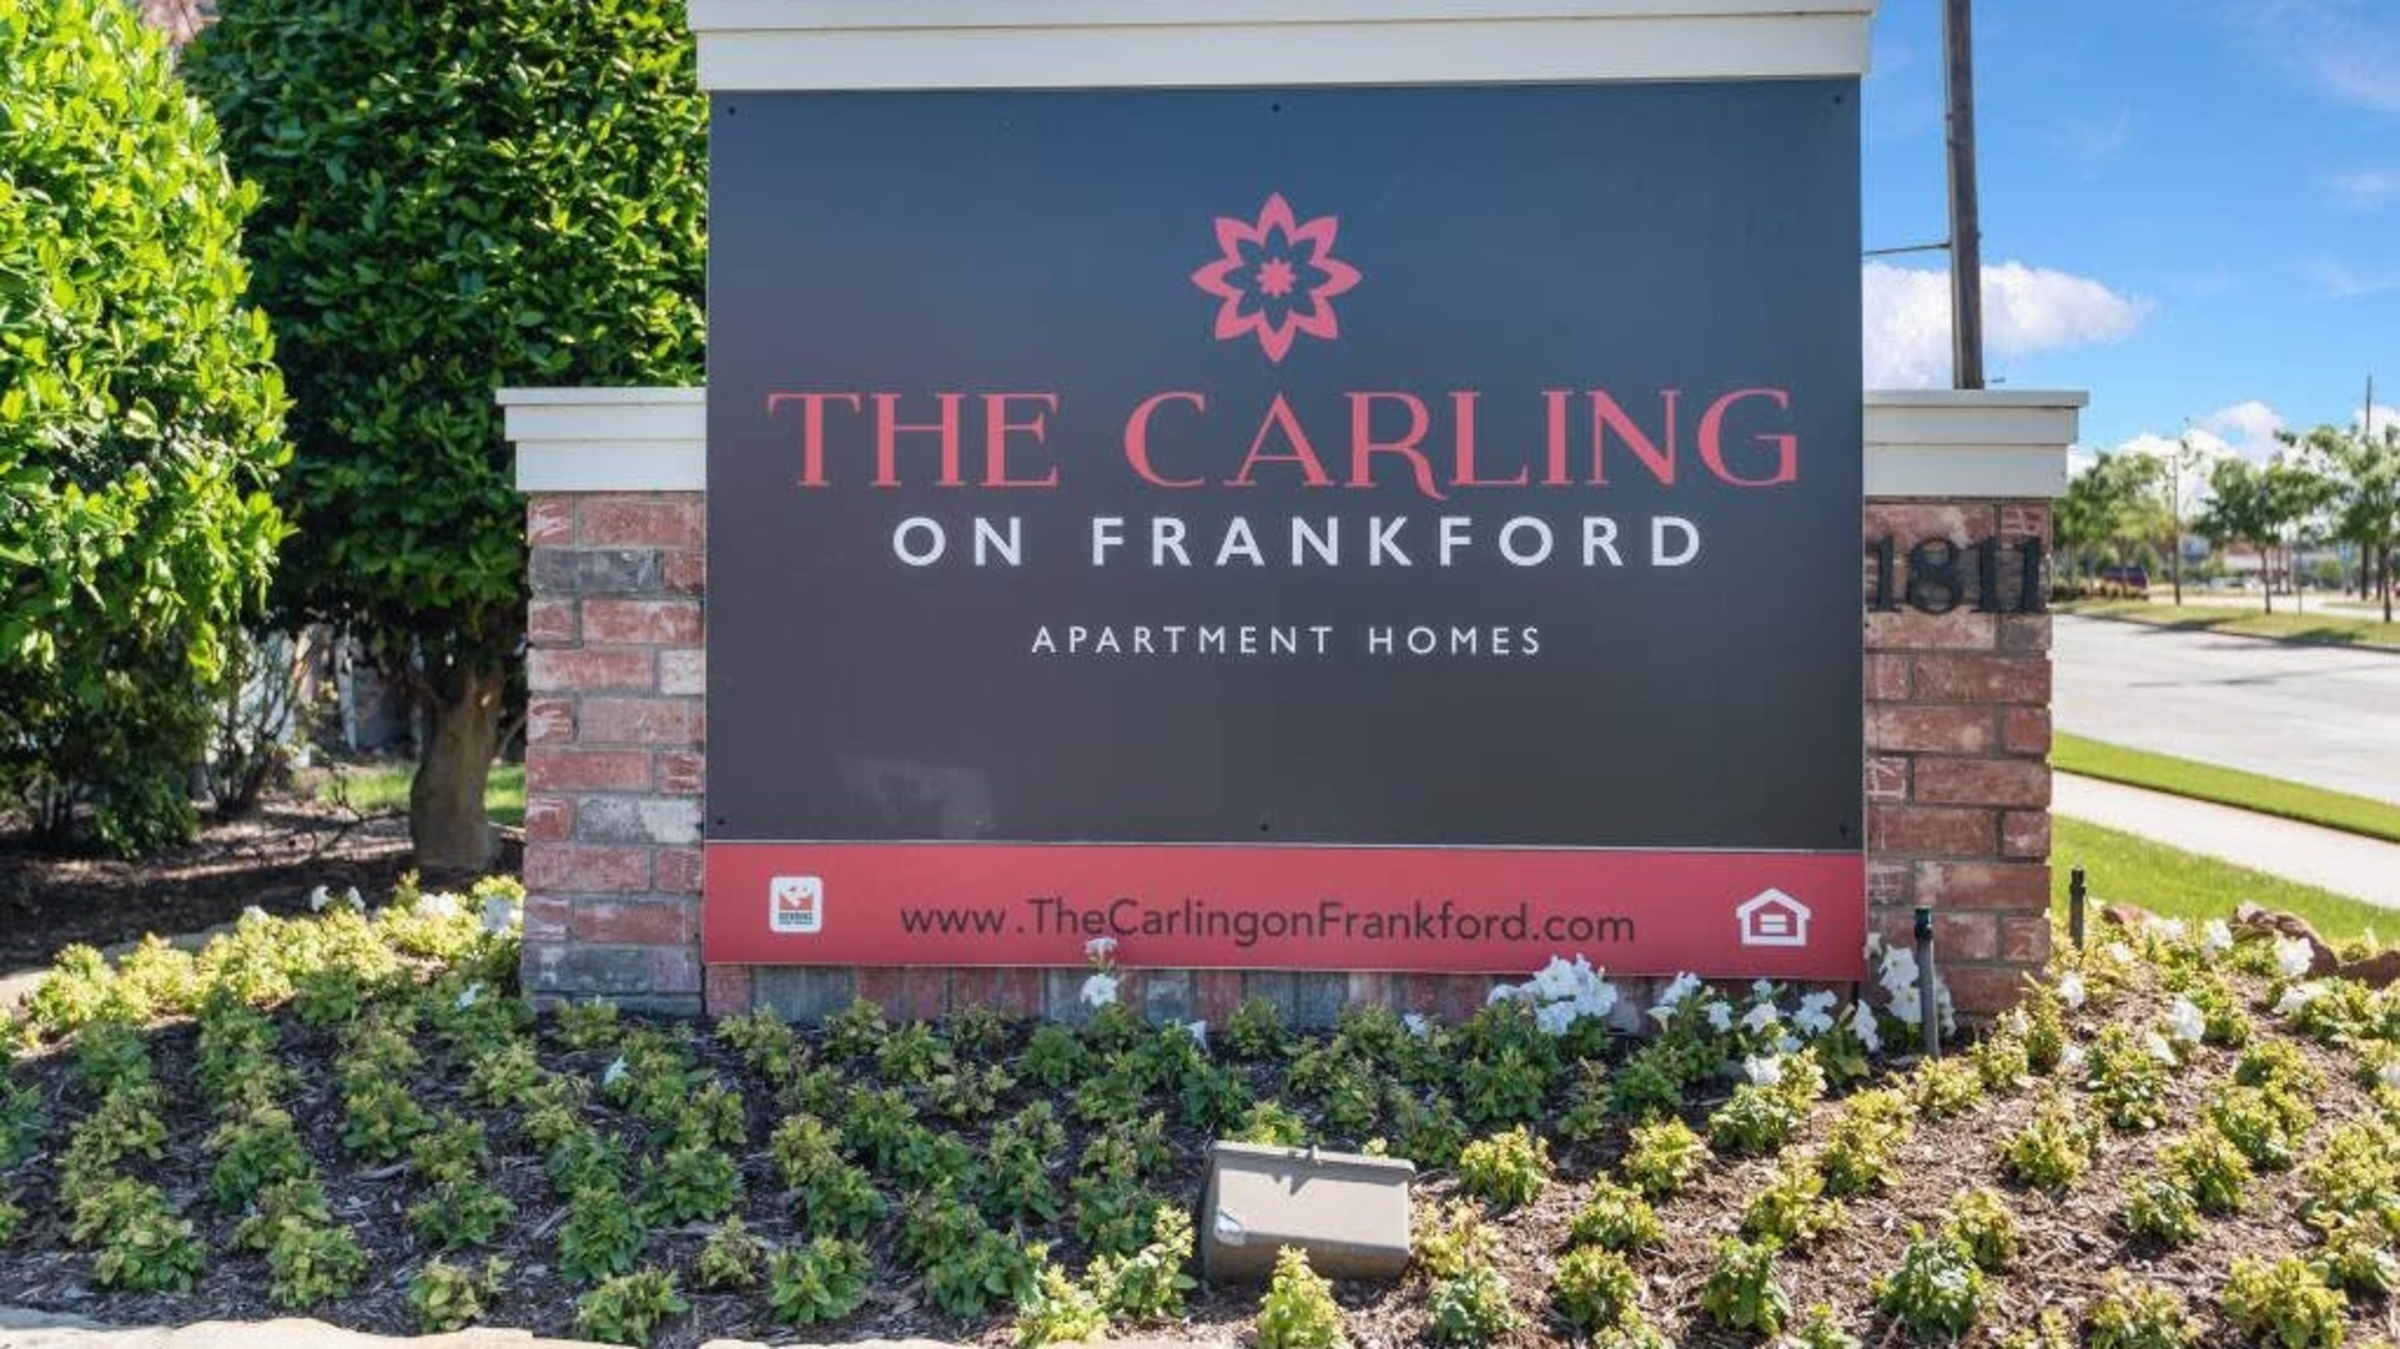 The Carling on Frankford 906